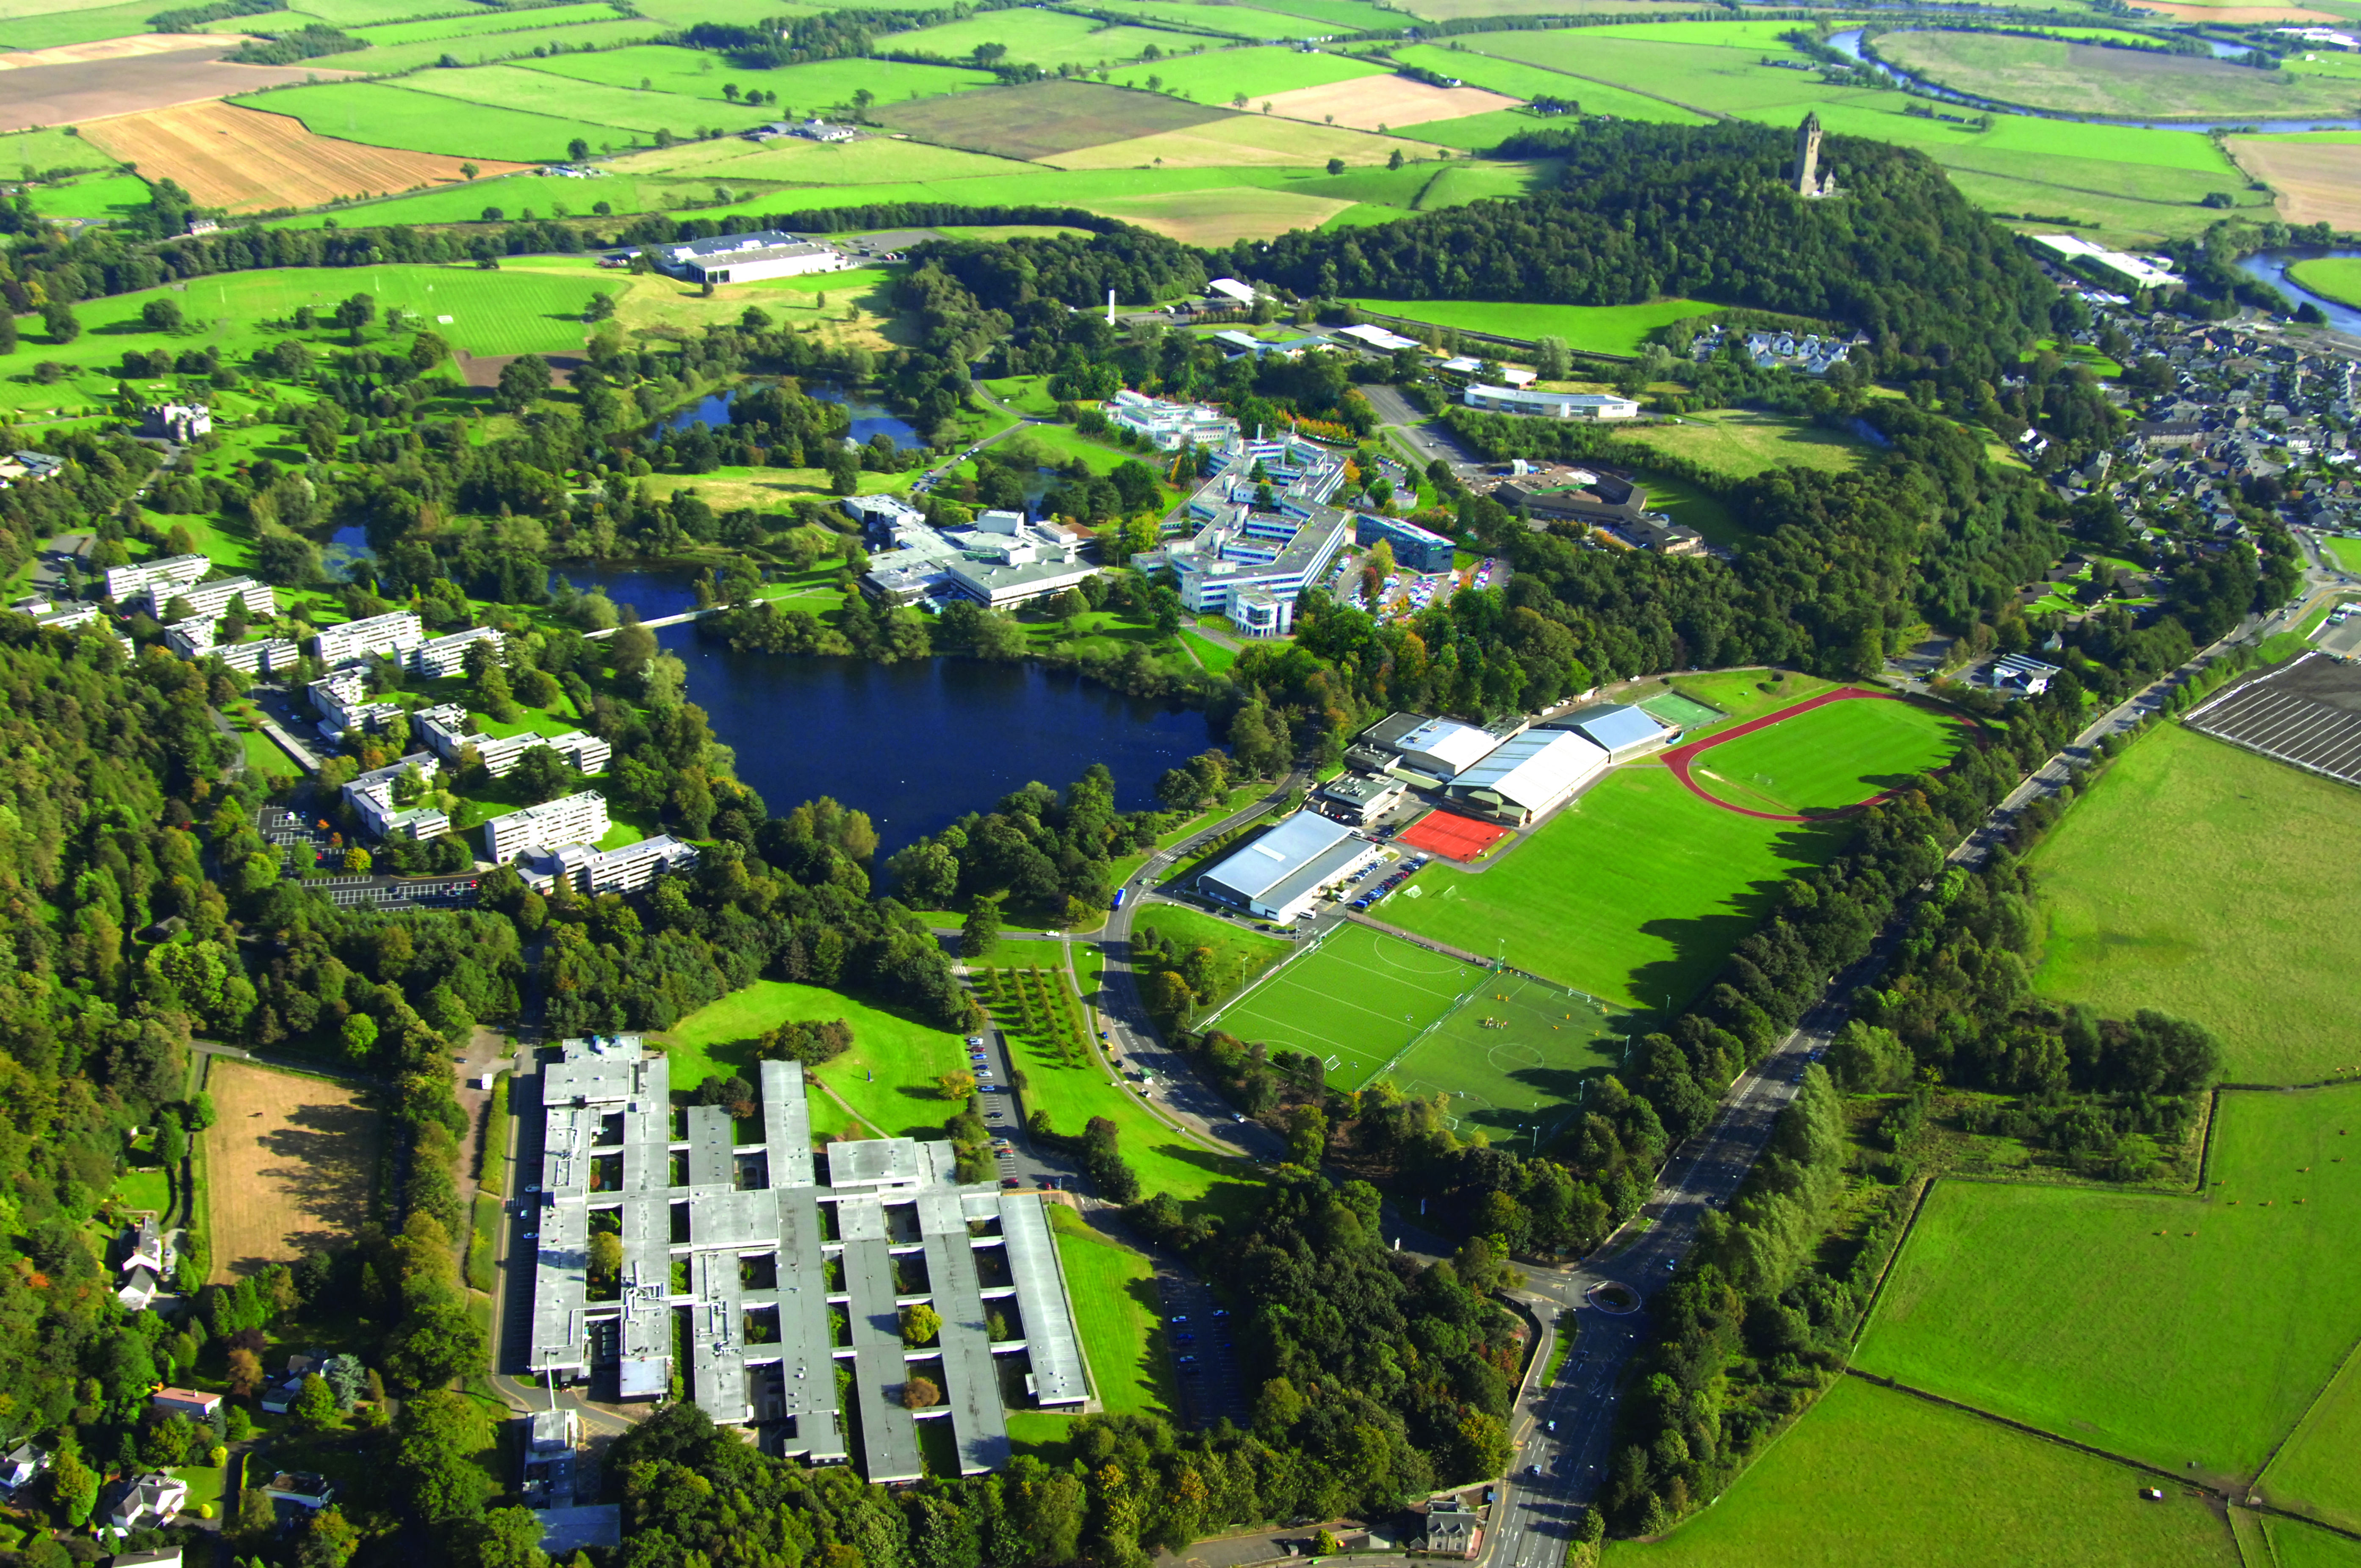 Aerial view of the University of Stirling campus